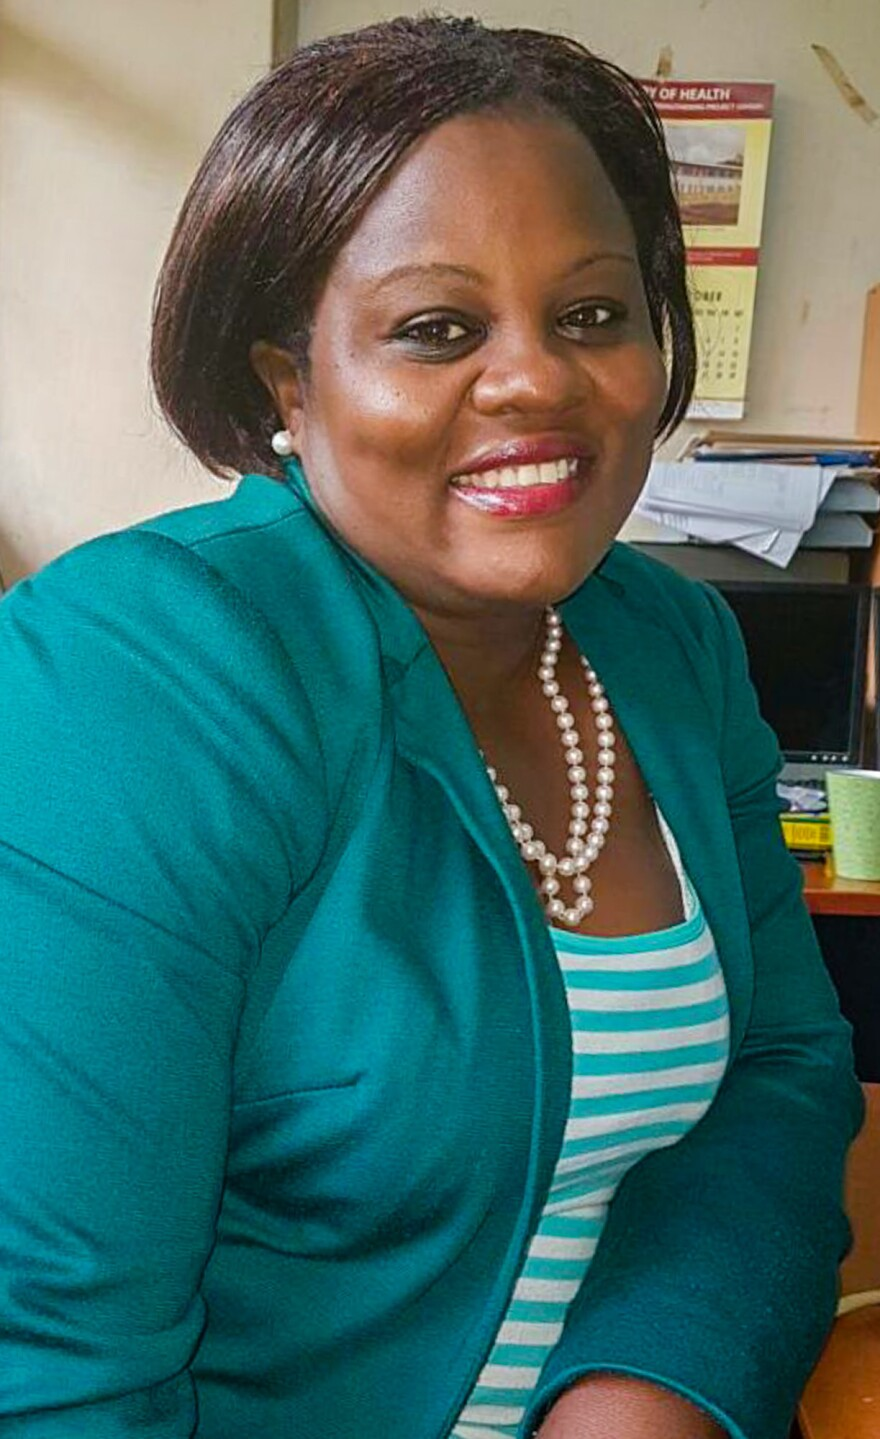 """Epidemiologist Christine Kihembo: """"These people probably have been suffering silently without help for more than 30 years."""""""